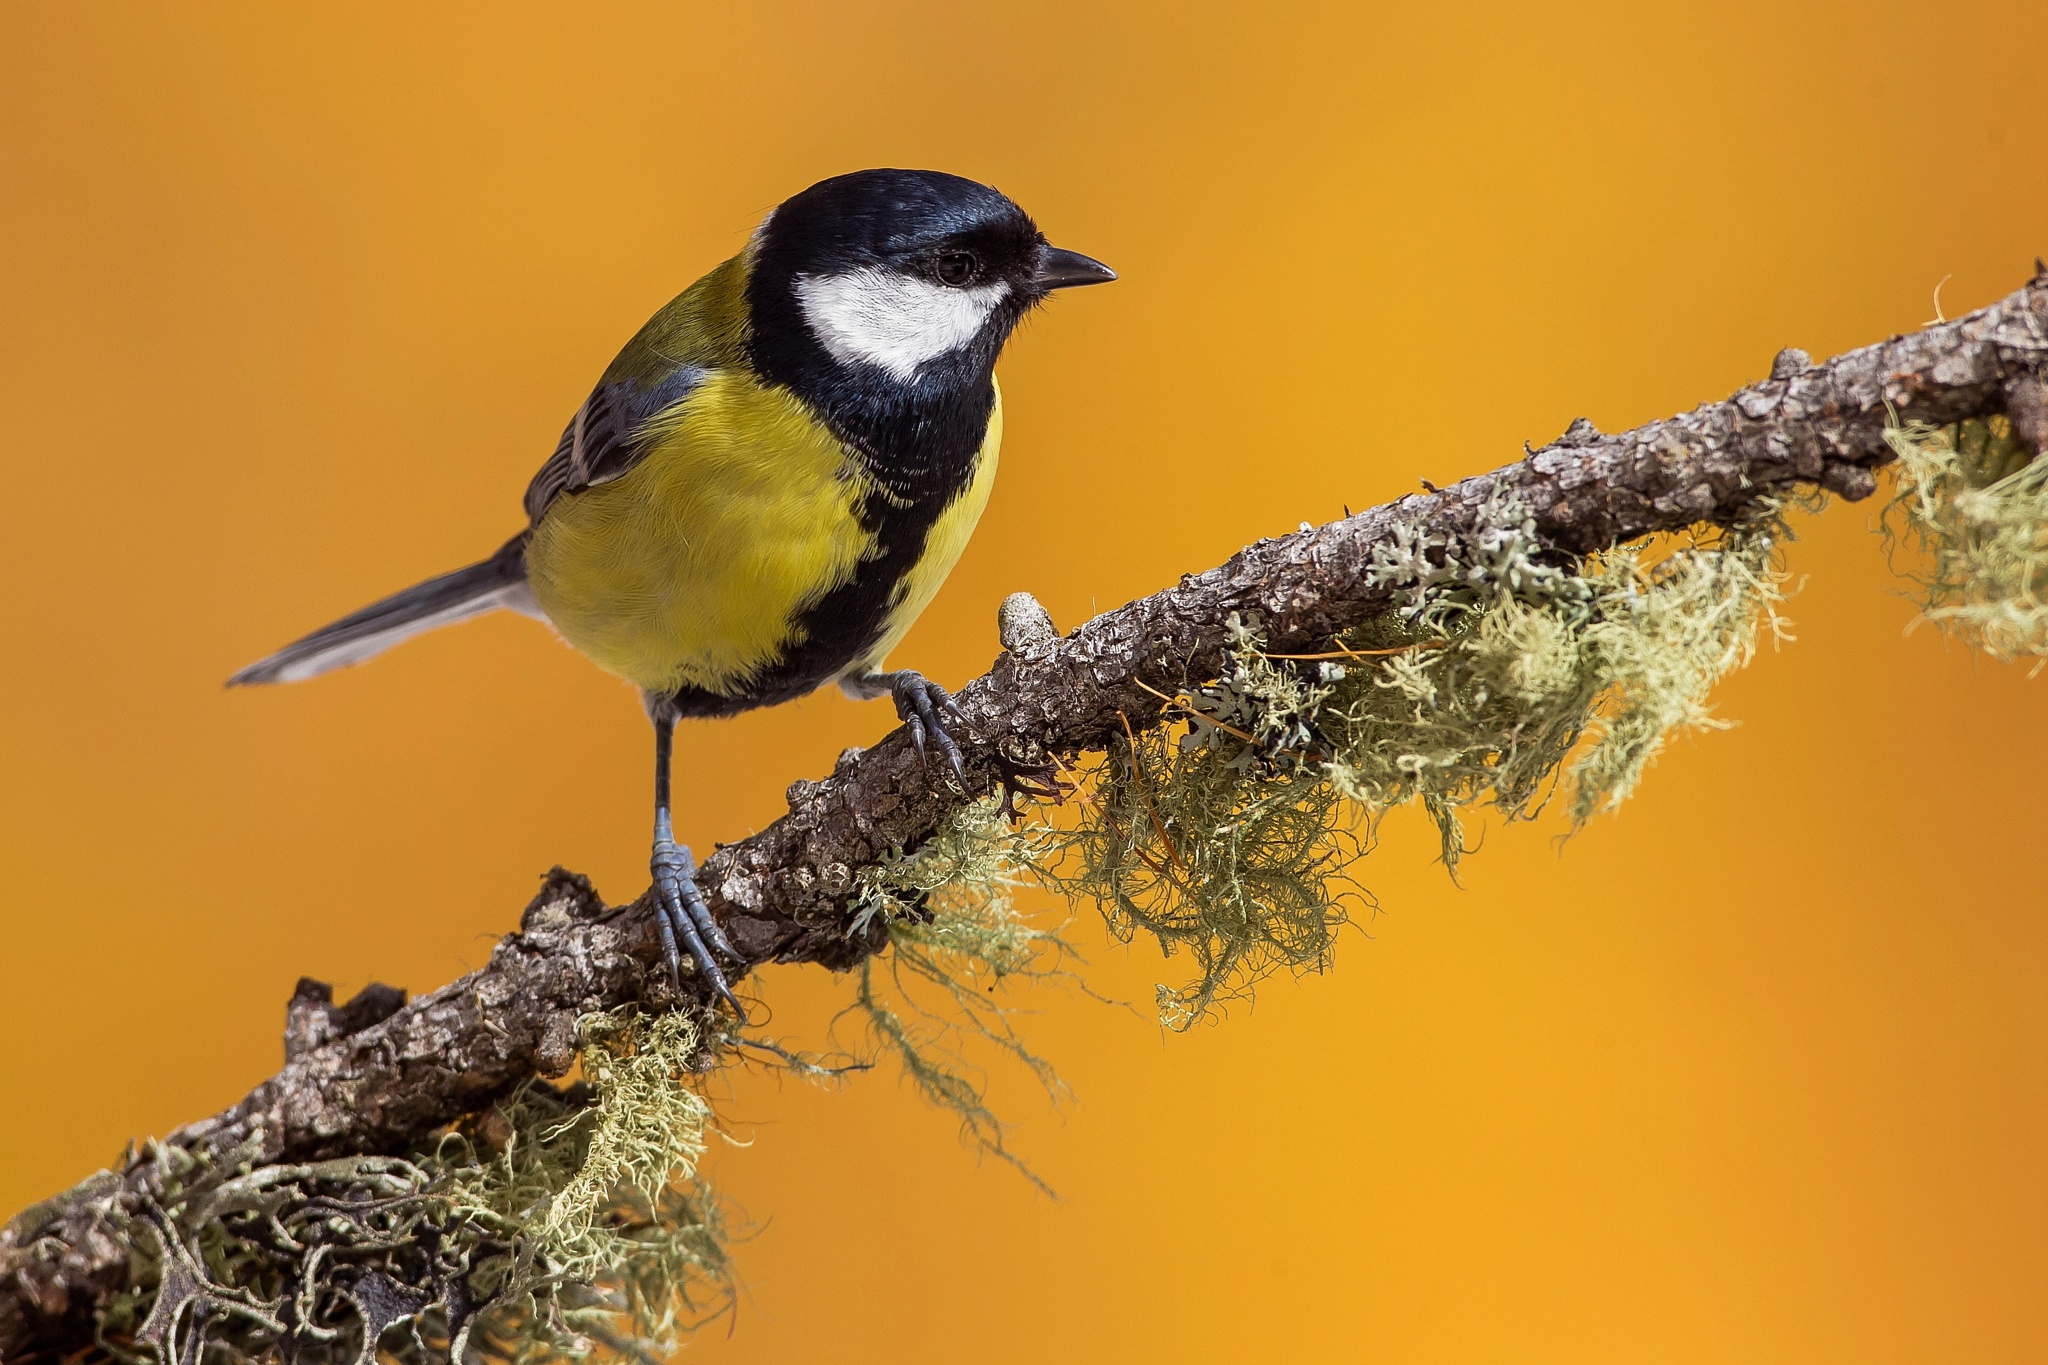 Titmouse by Carlo Allievi